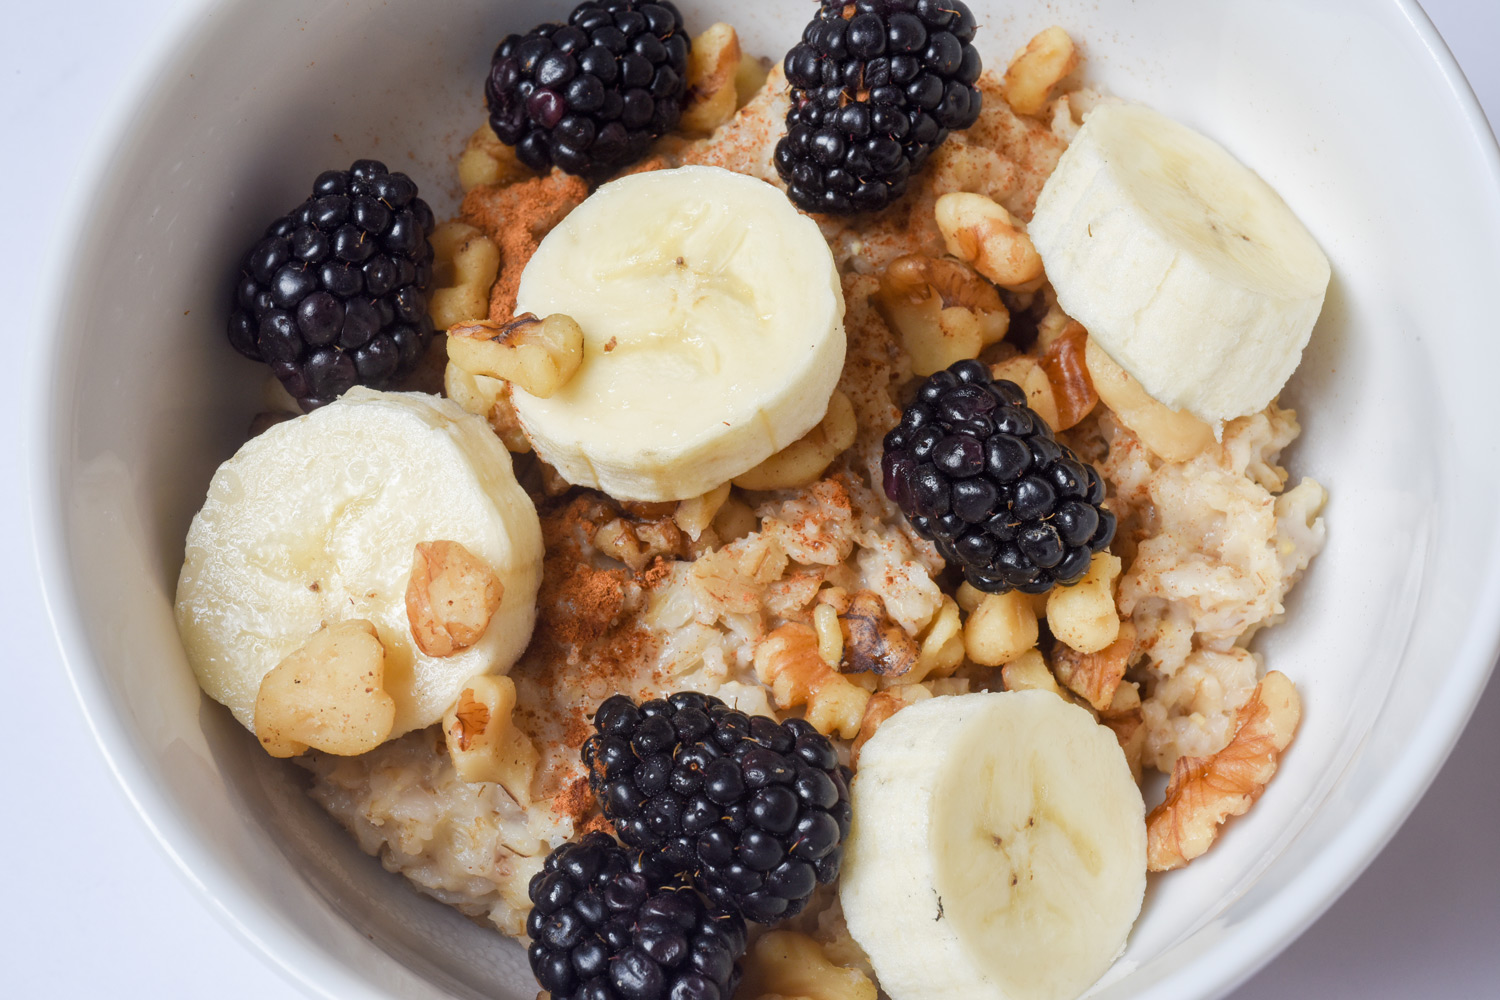 Oatmeal (nuts, fruits and seeds)